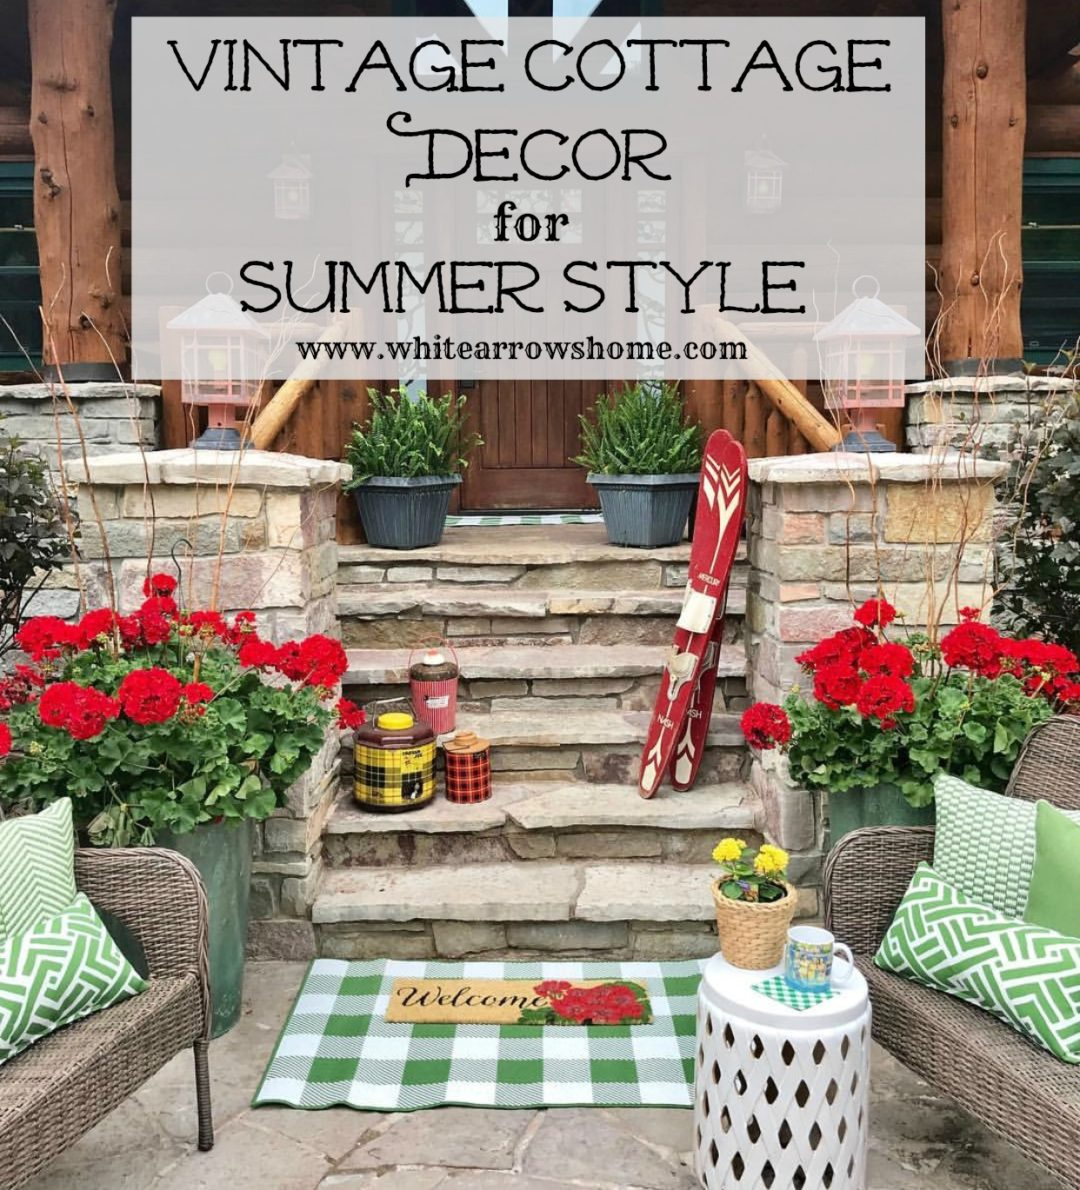 Follow The Yellow Brick Home  Vintage Cottage Decor For